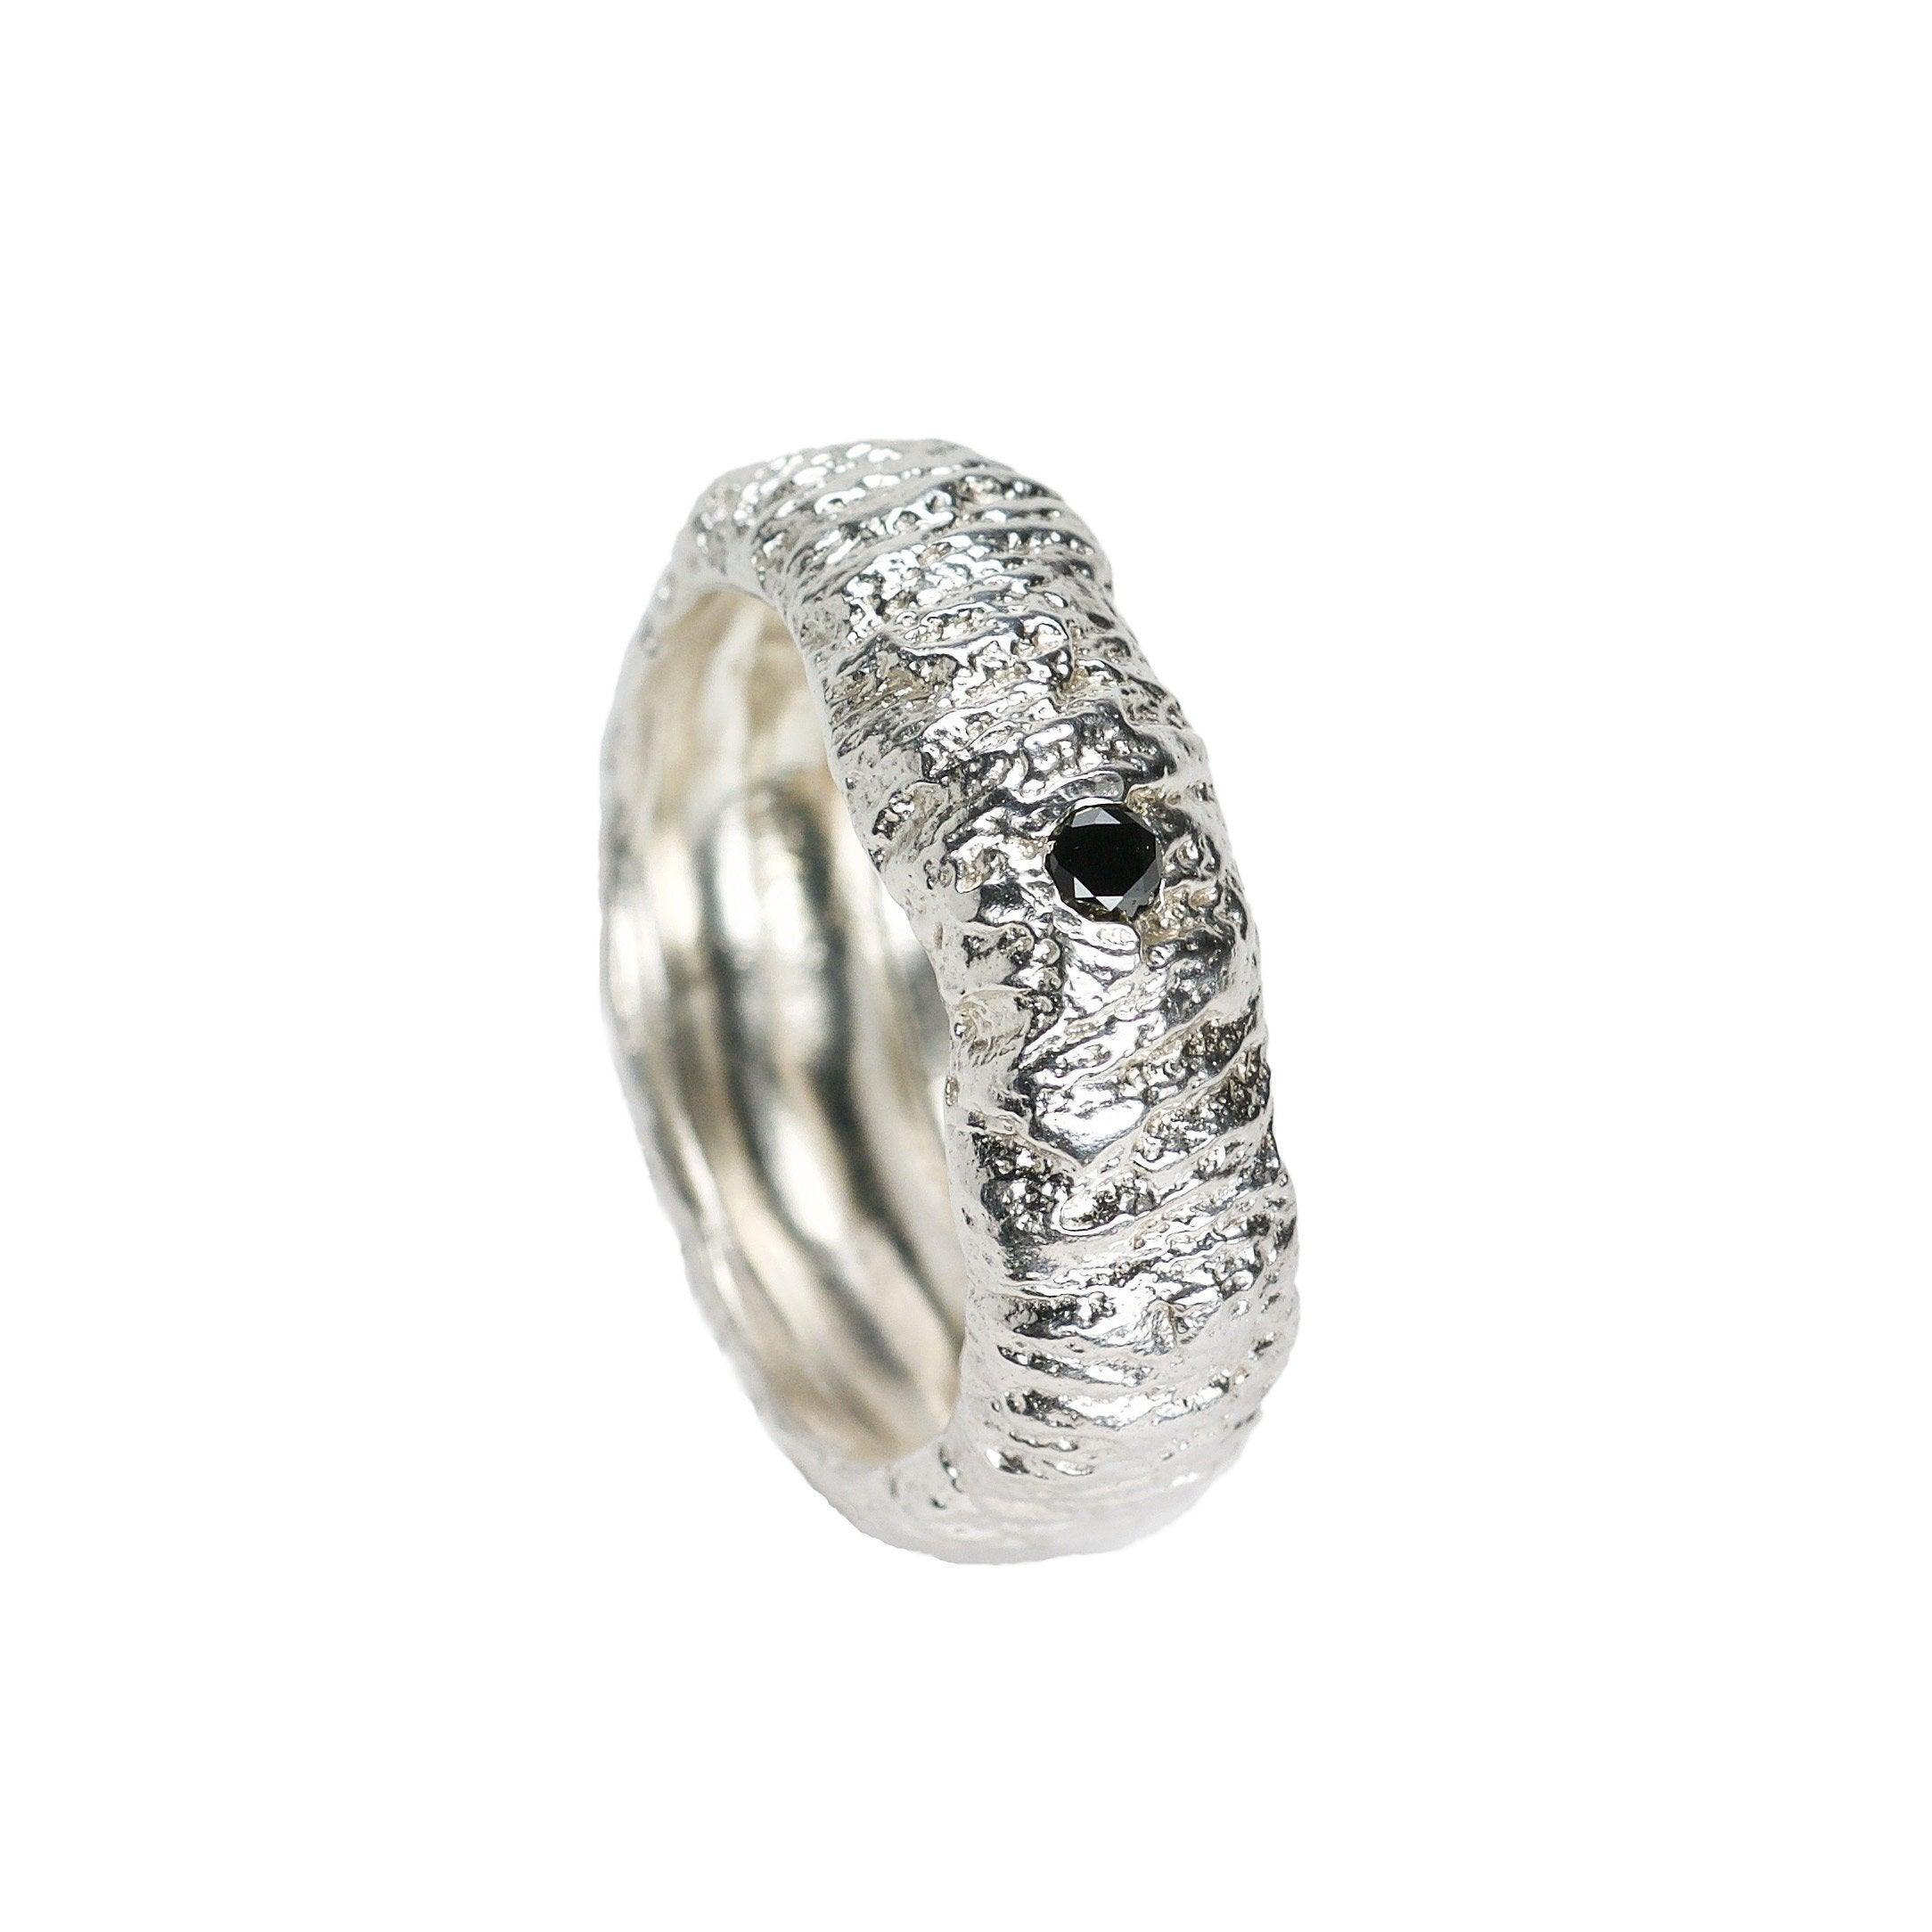 Tree Trunk Imprint Ring - Sterling Silver  - US Size 9